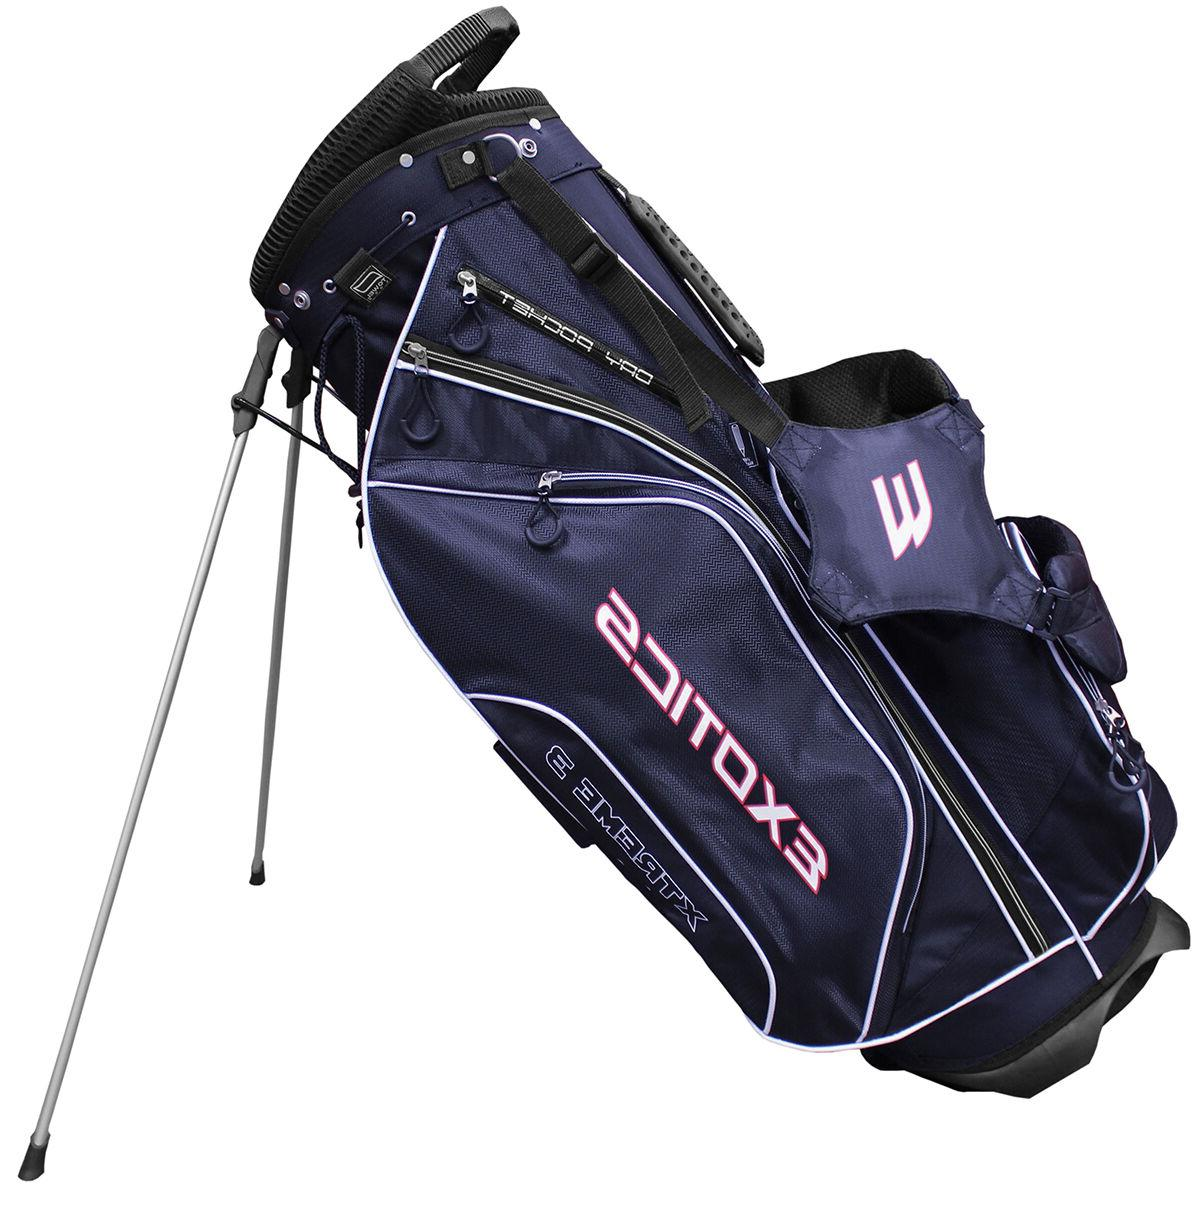 Tour Extreme 3 Bag - Multiple Colors Available - NEW